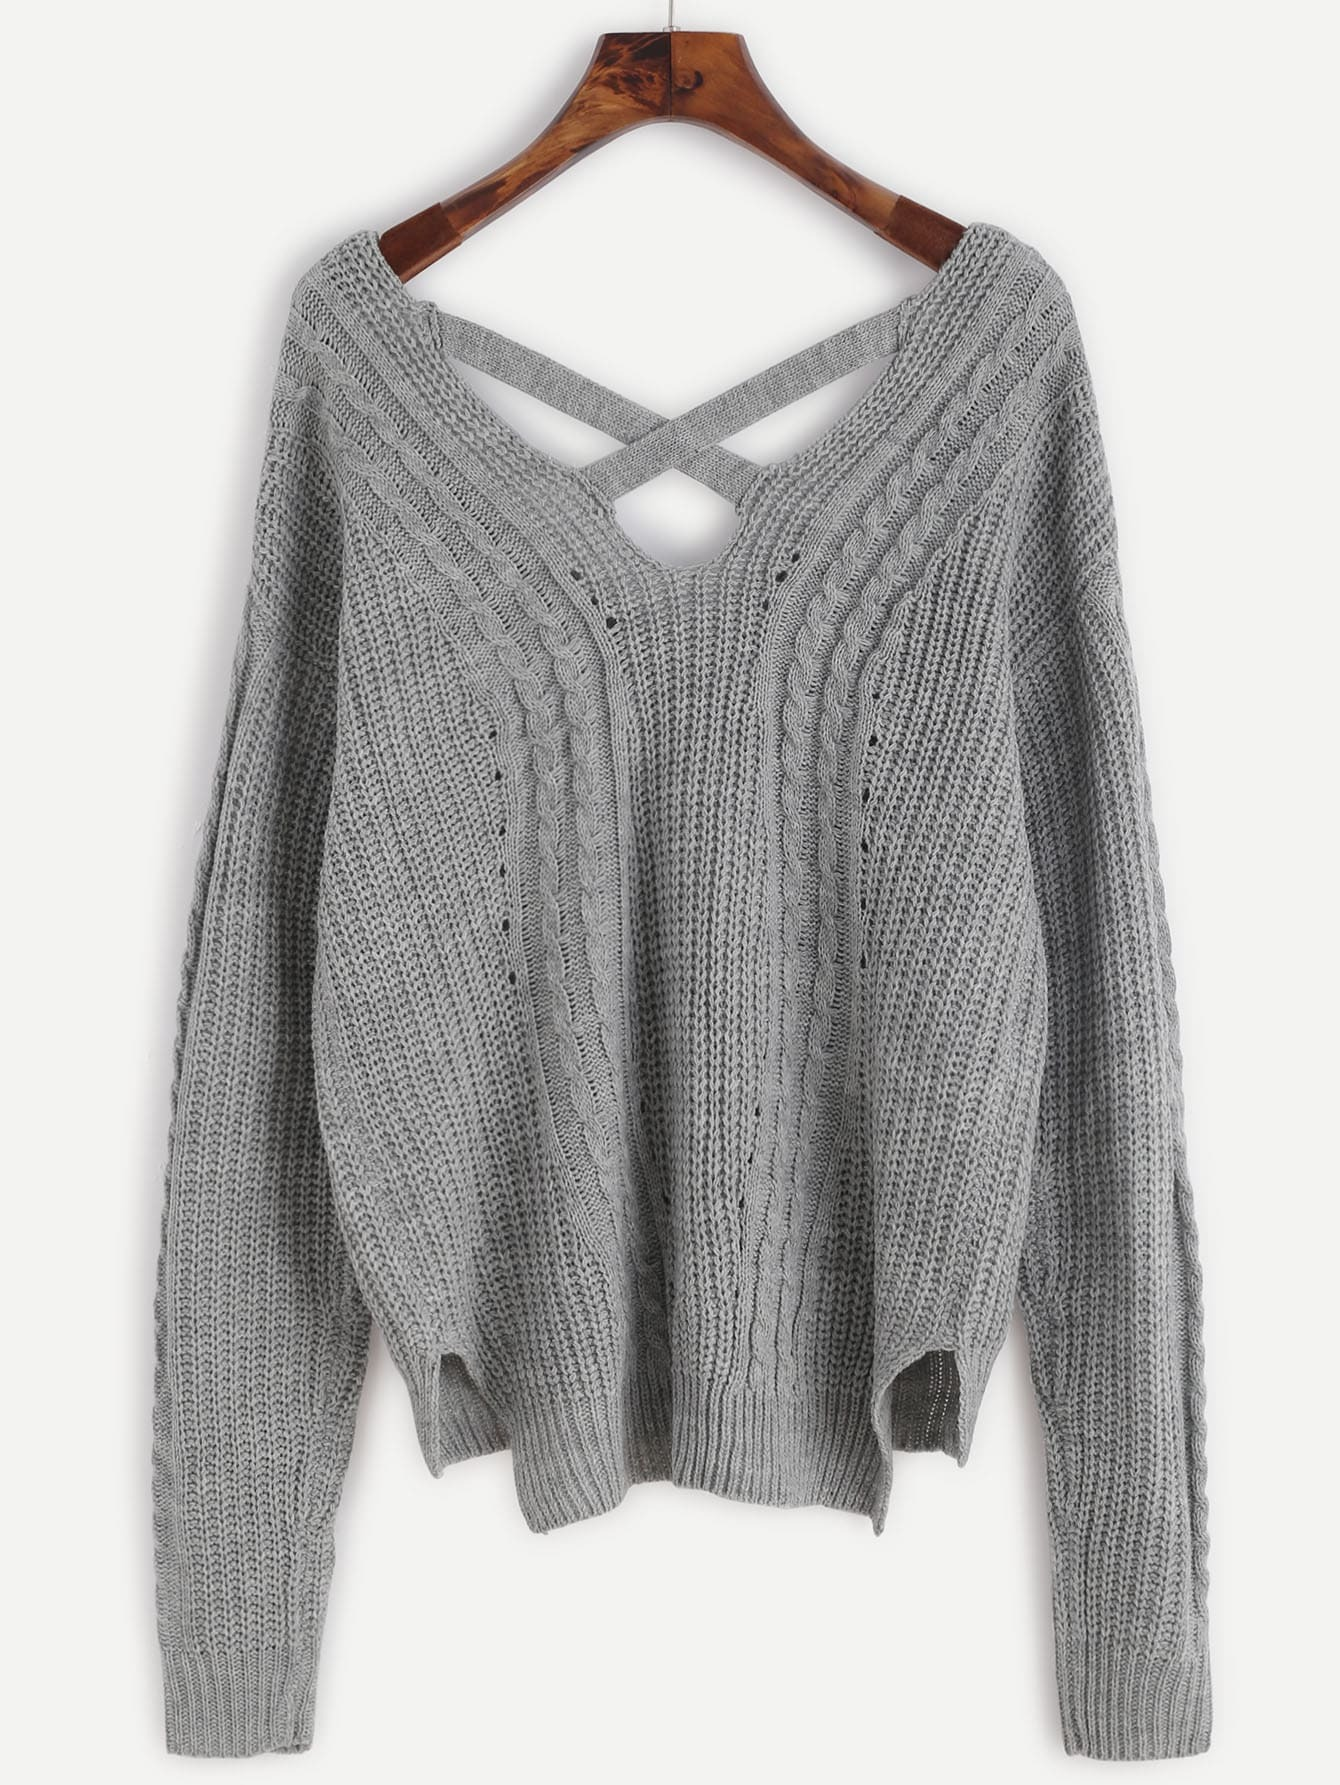 Grey Cable Knit Criss Cross Back Sweater -SheIn(Sheinside)